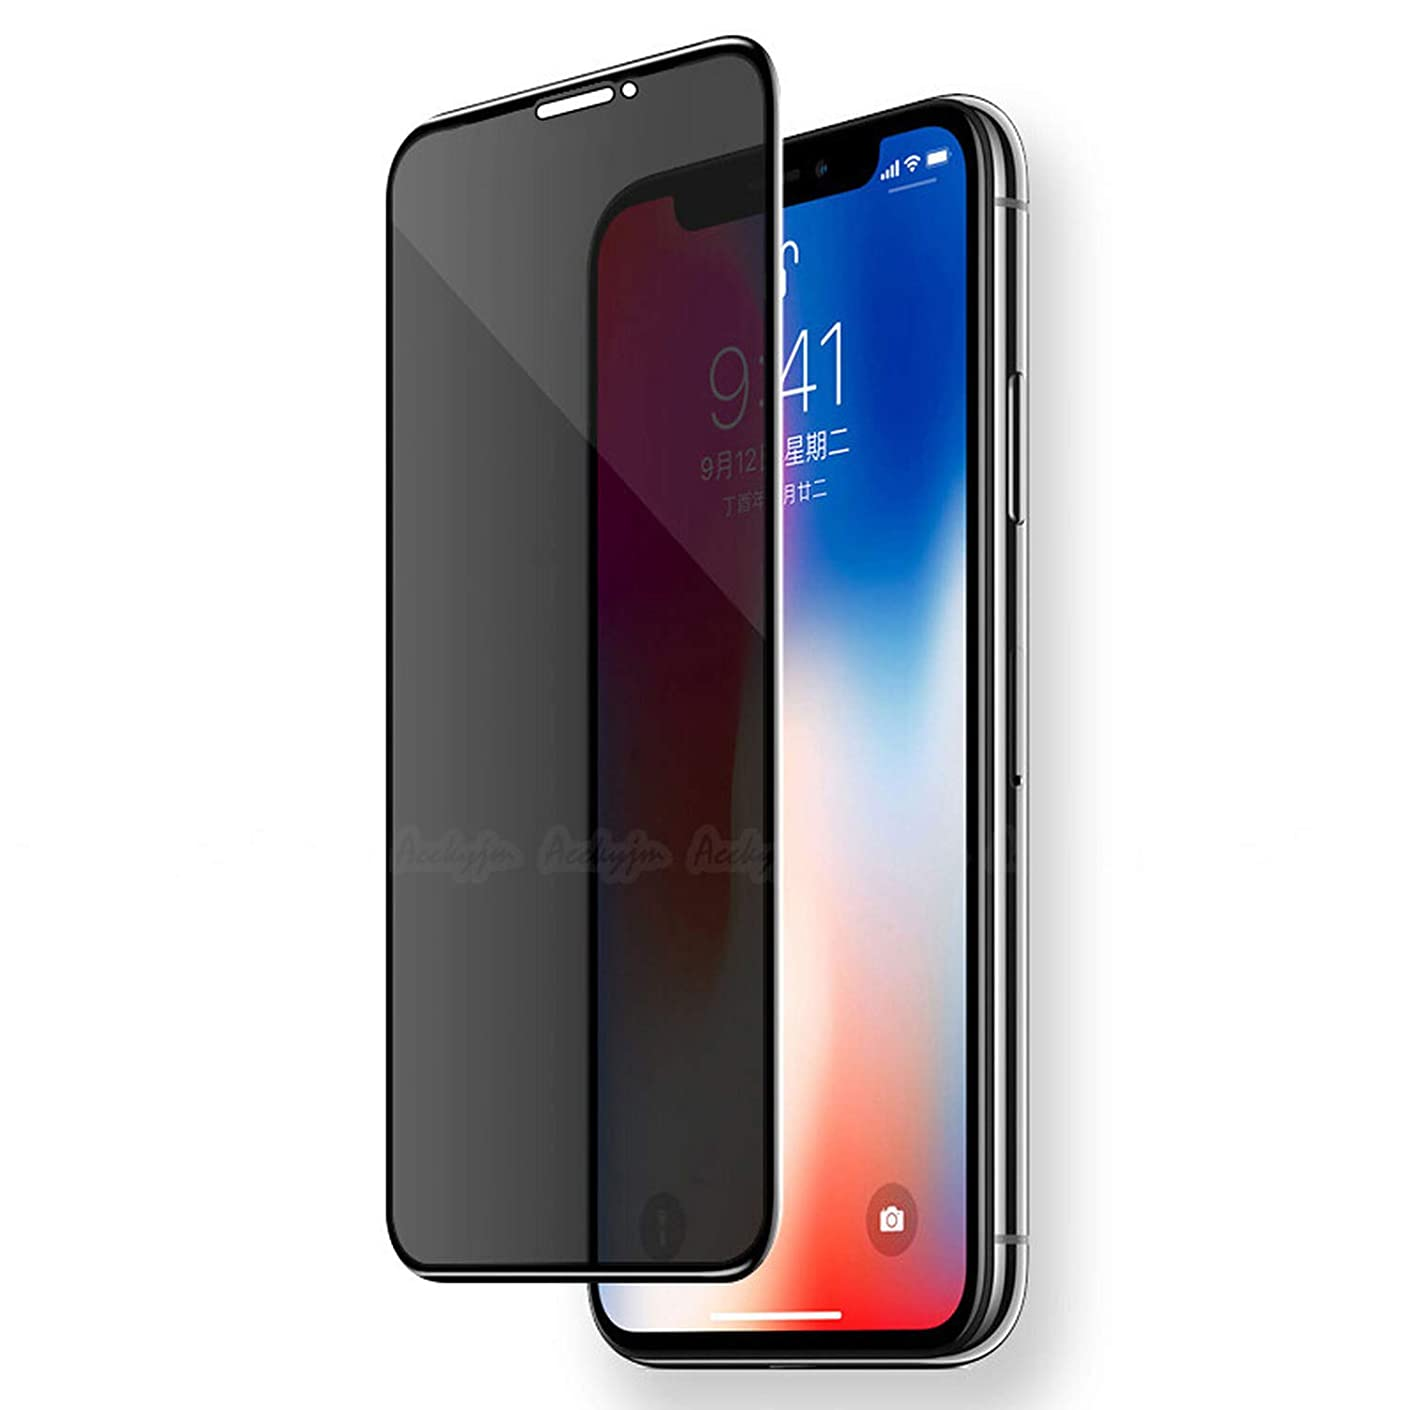 Anti-Spy Tempered Glass for iPhone X New Glass Keep Your Secret for iPhone 7 8 6 Plus Xr Xs Max Screen Protector,for iPhone 7 Plus,Anti-Spy Glass